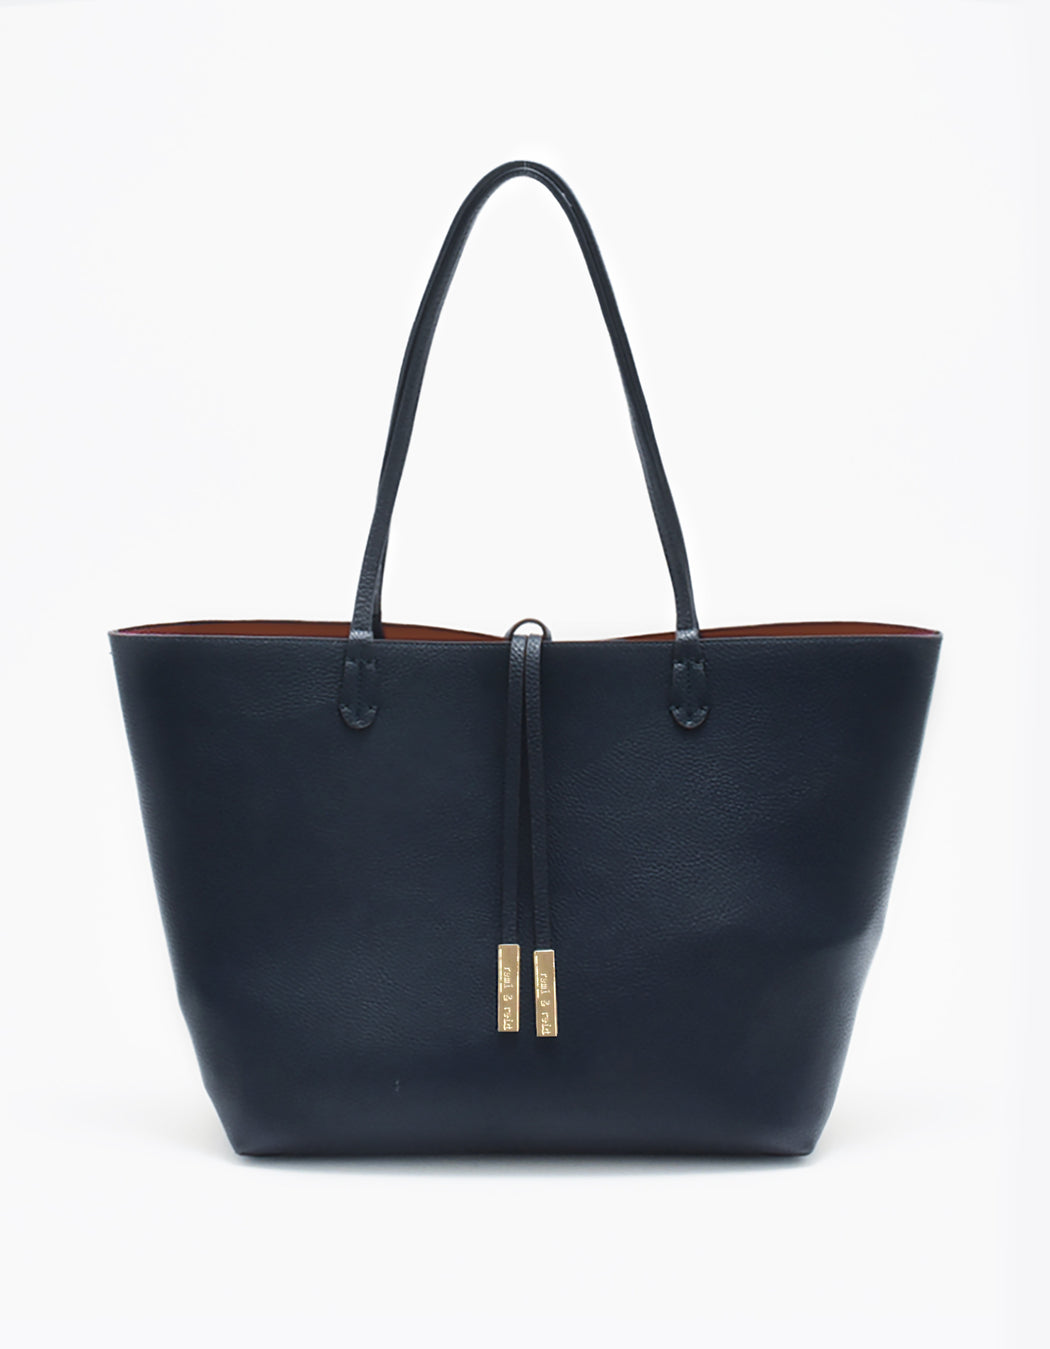 DEPARTURE TOTE MIDNIGHT BLUE/COPPER